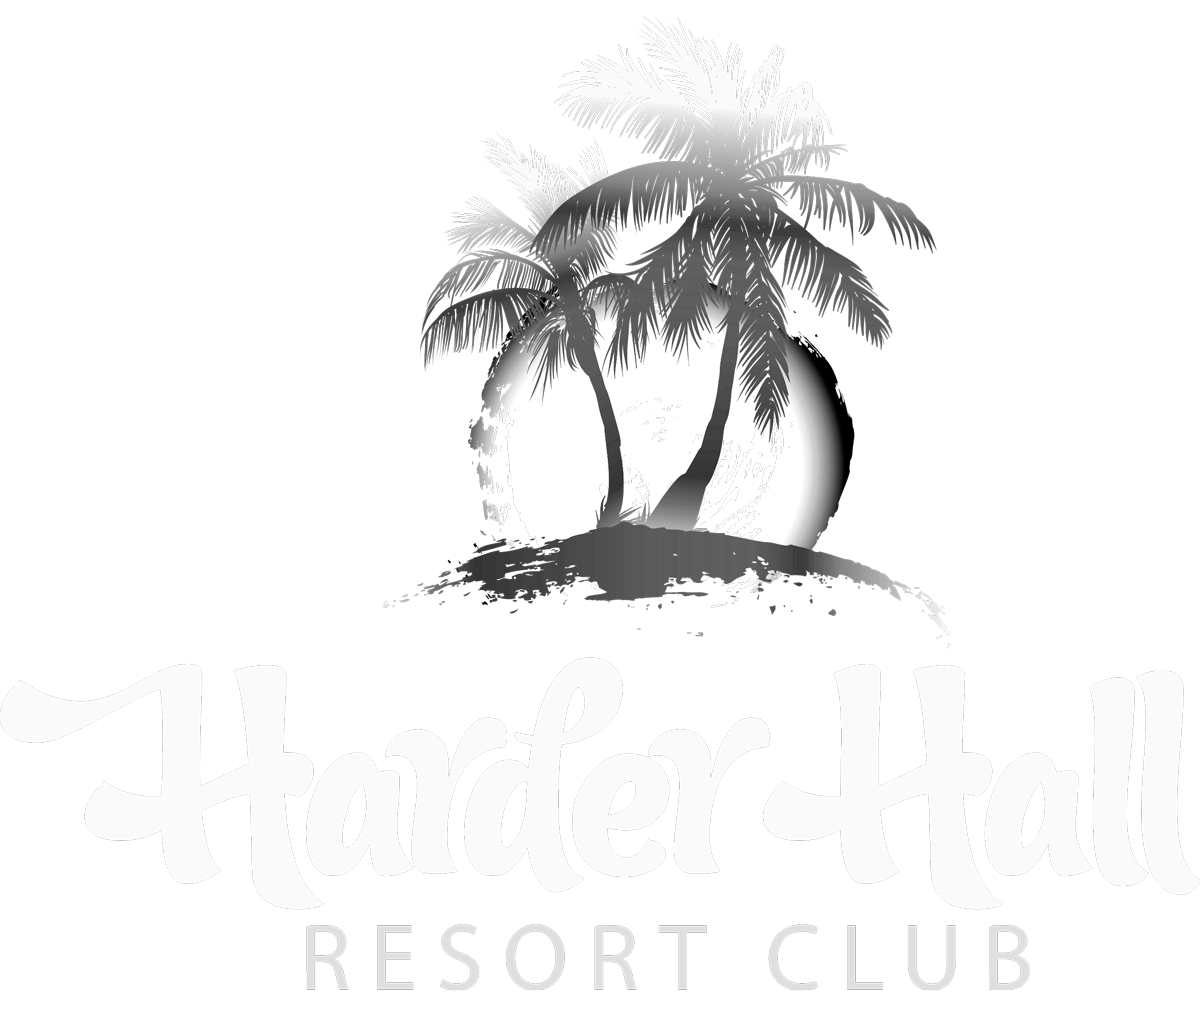 Harder Hall Resort Club logo